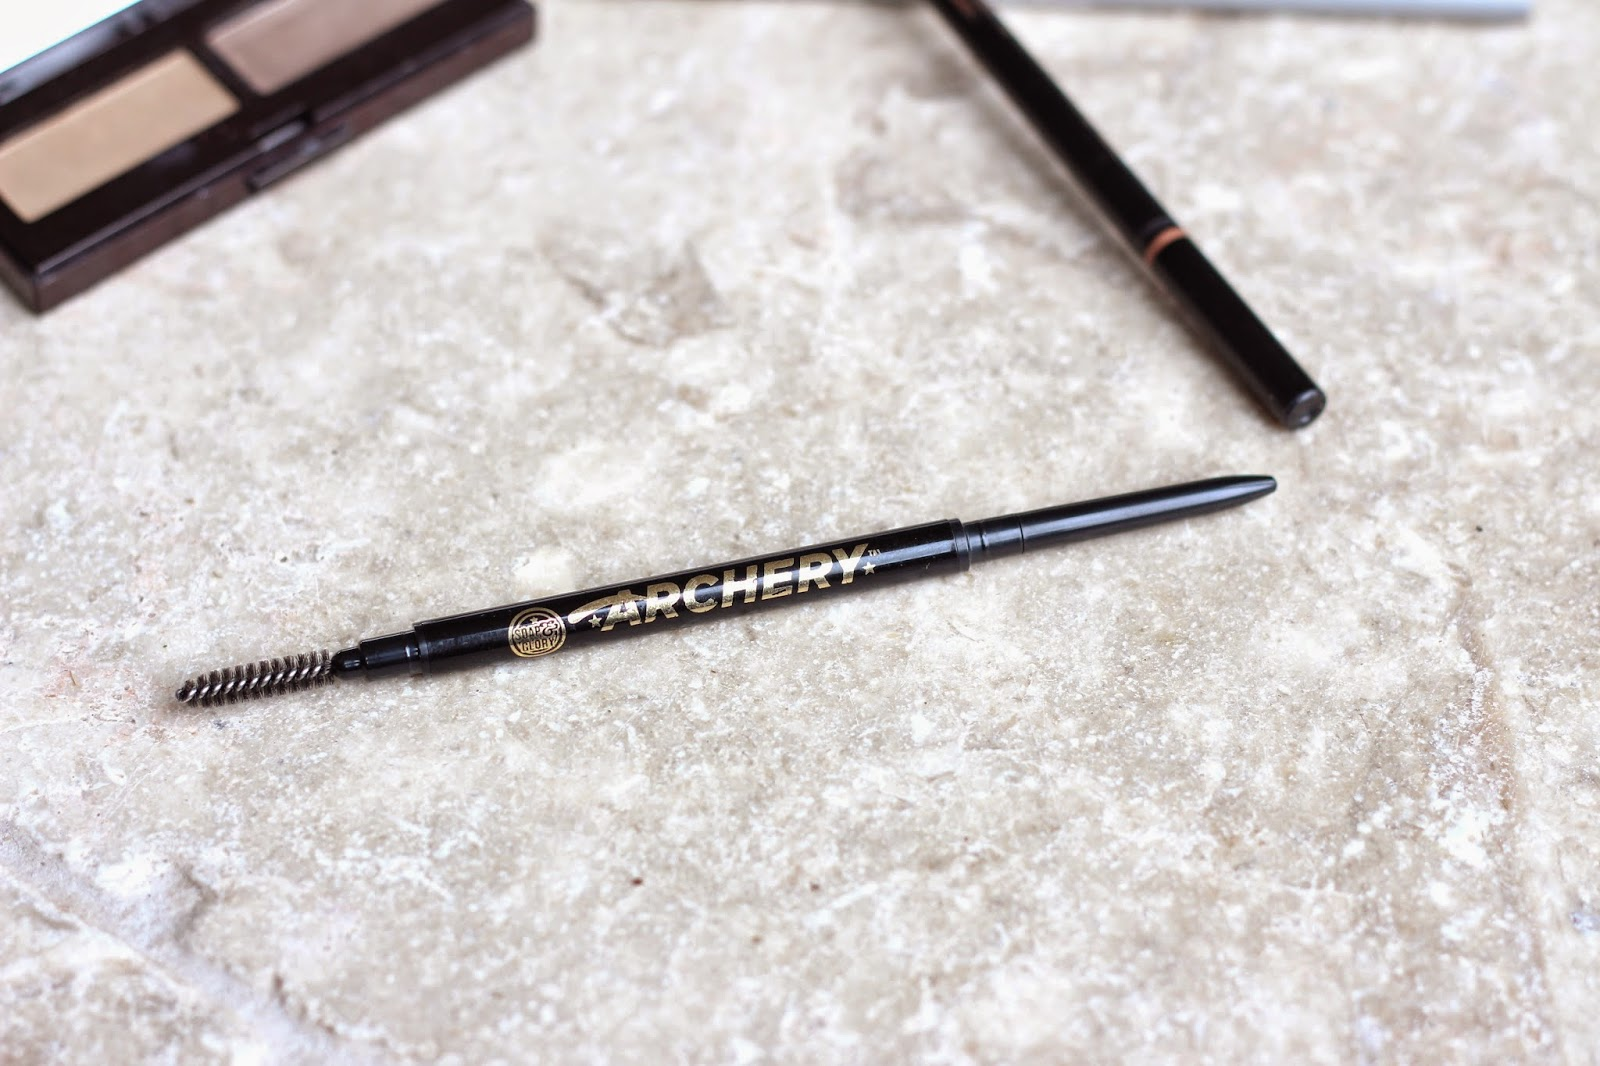 Soap & Glory Archery 2in1 Brow Filling Pencil & Brush Review